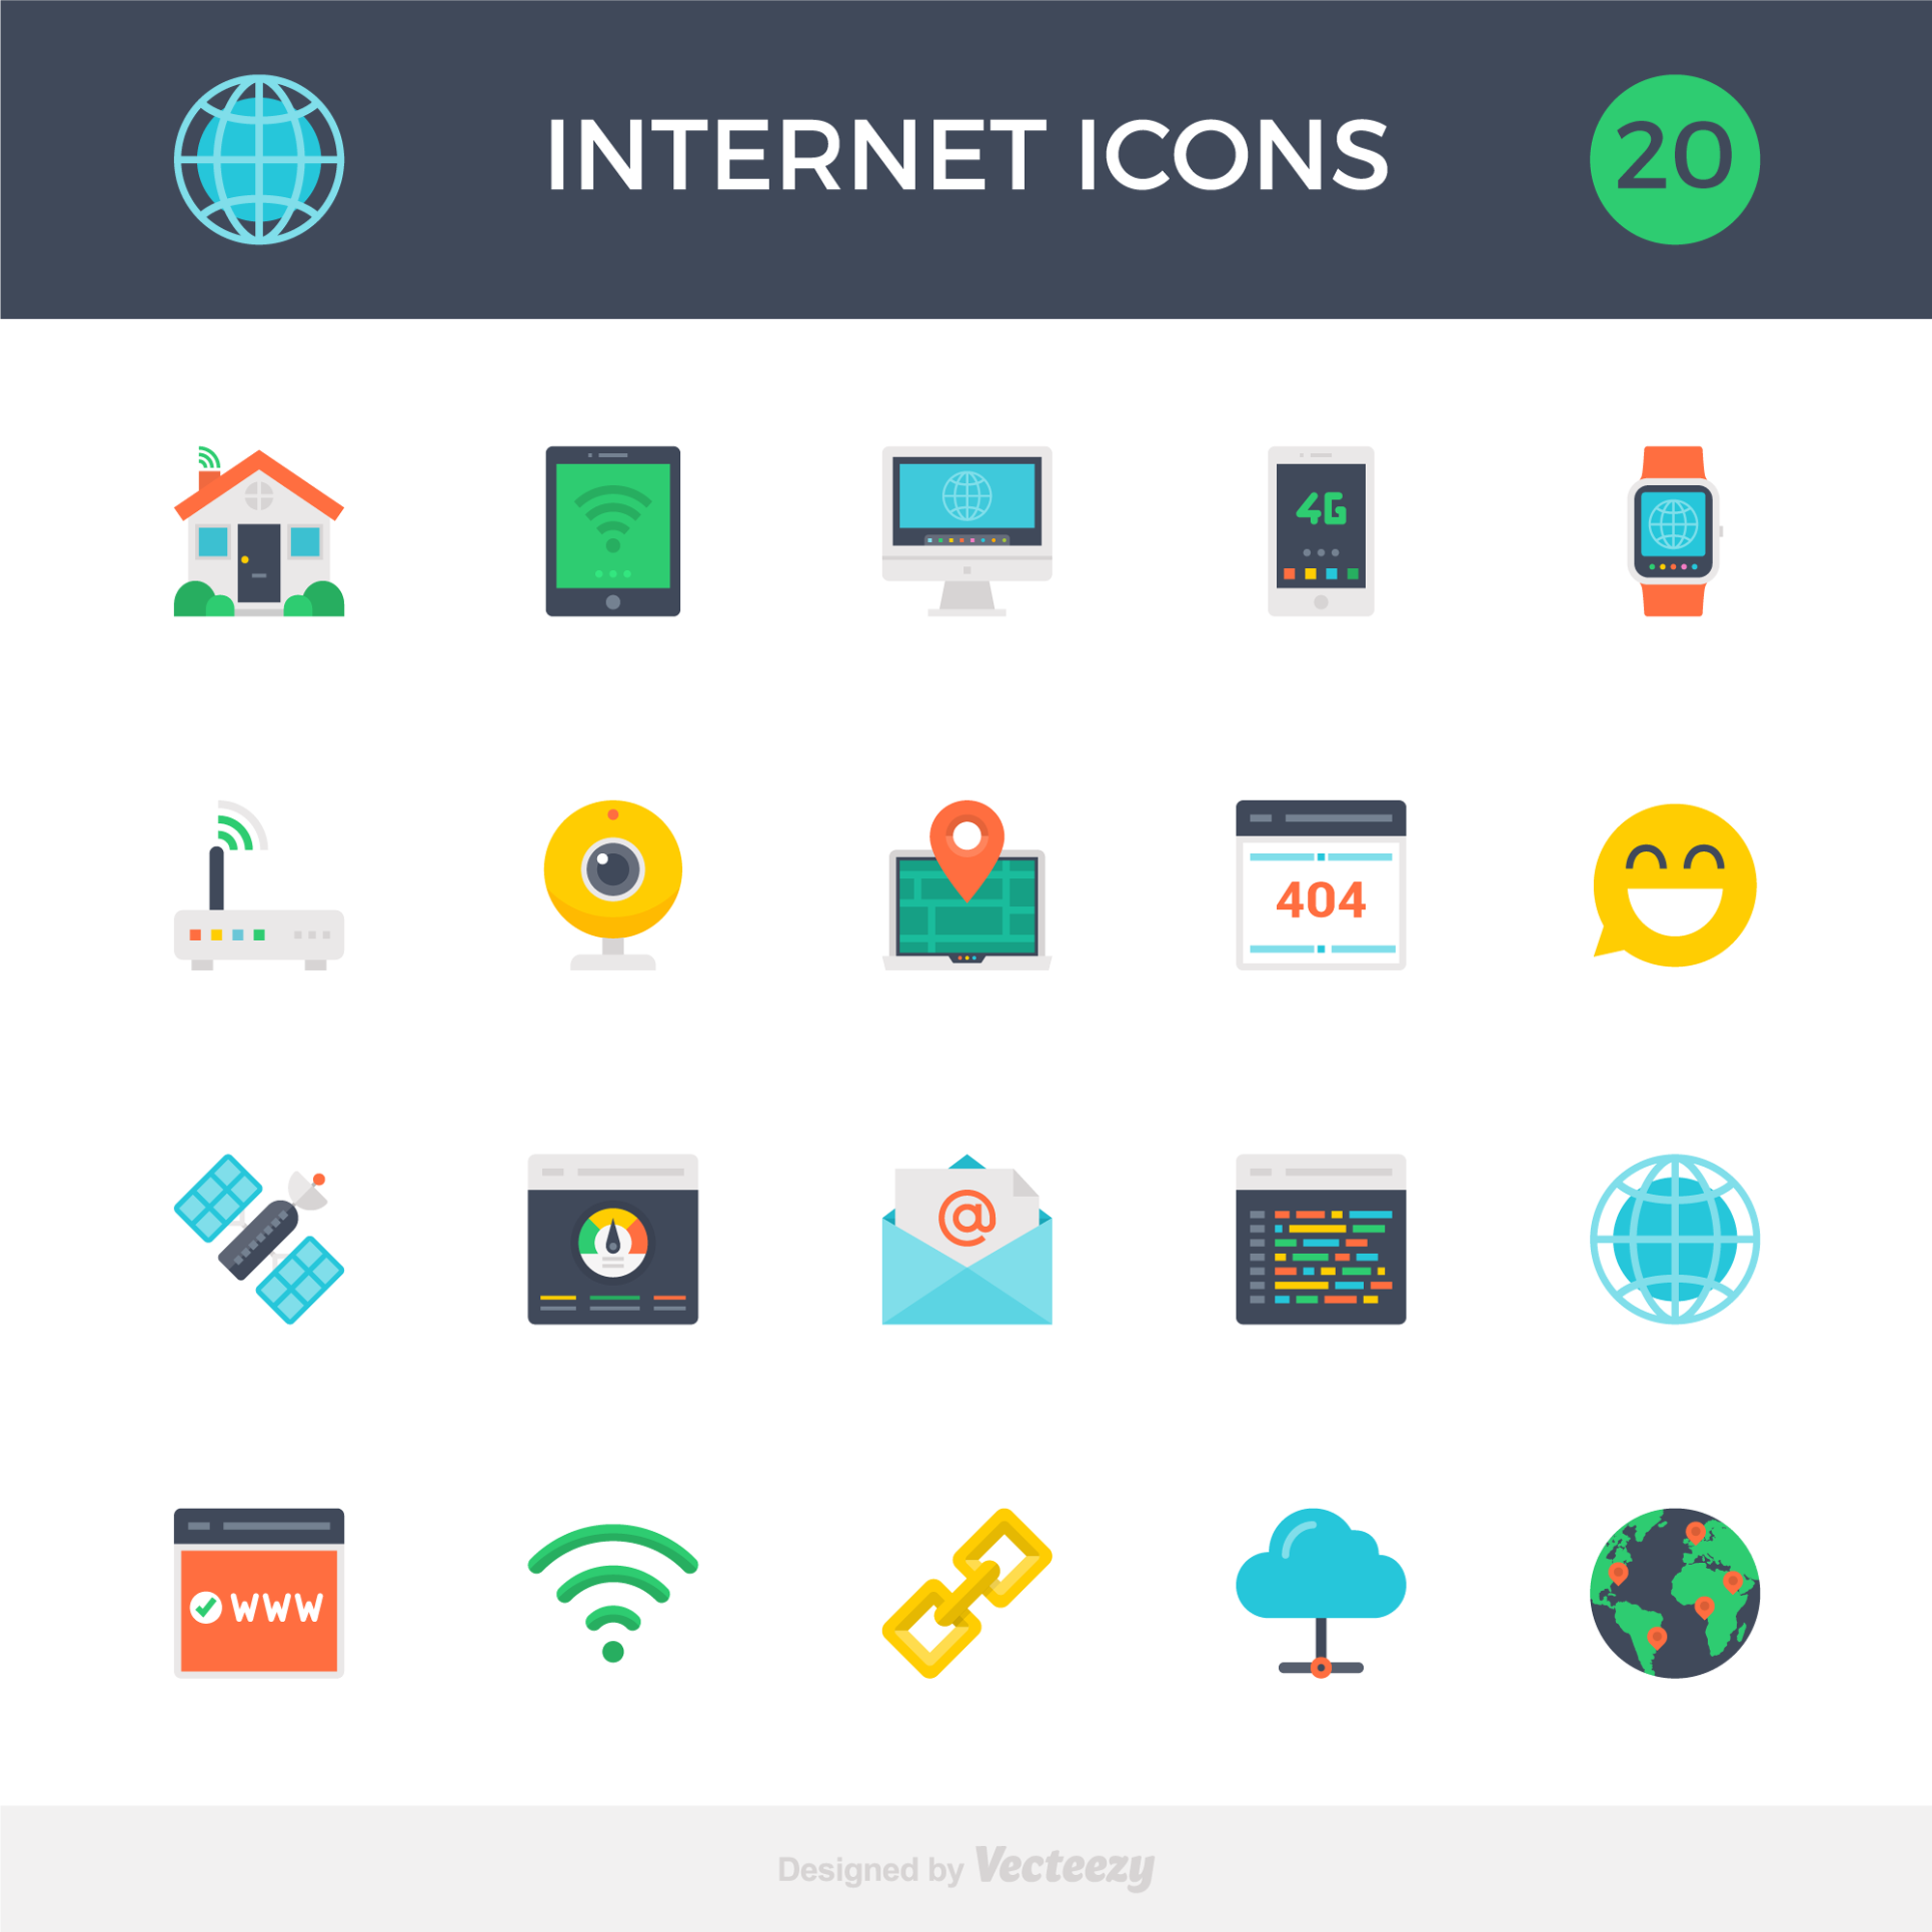 Internet Icons - Free icons to download - Illustrations